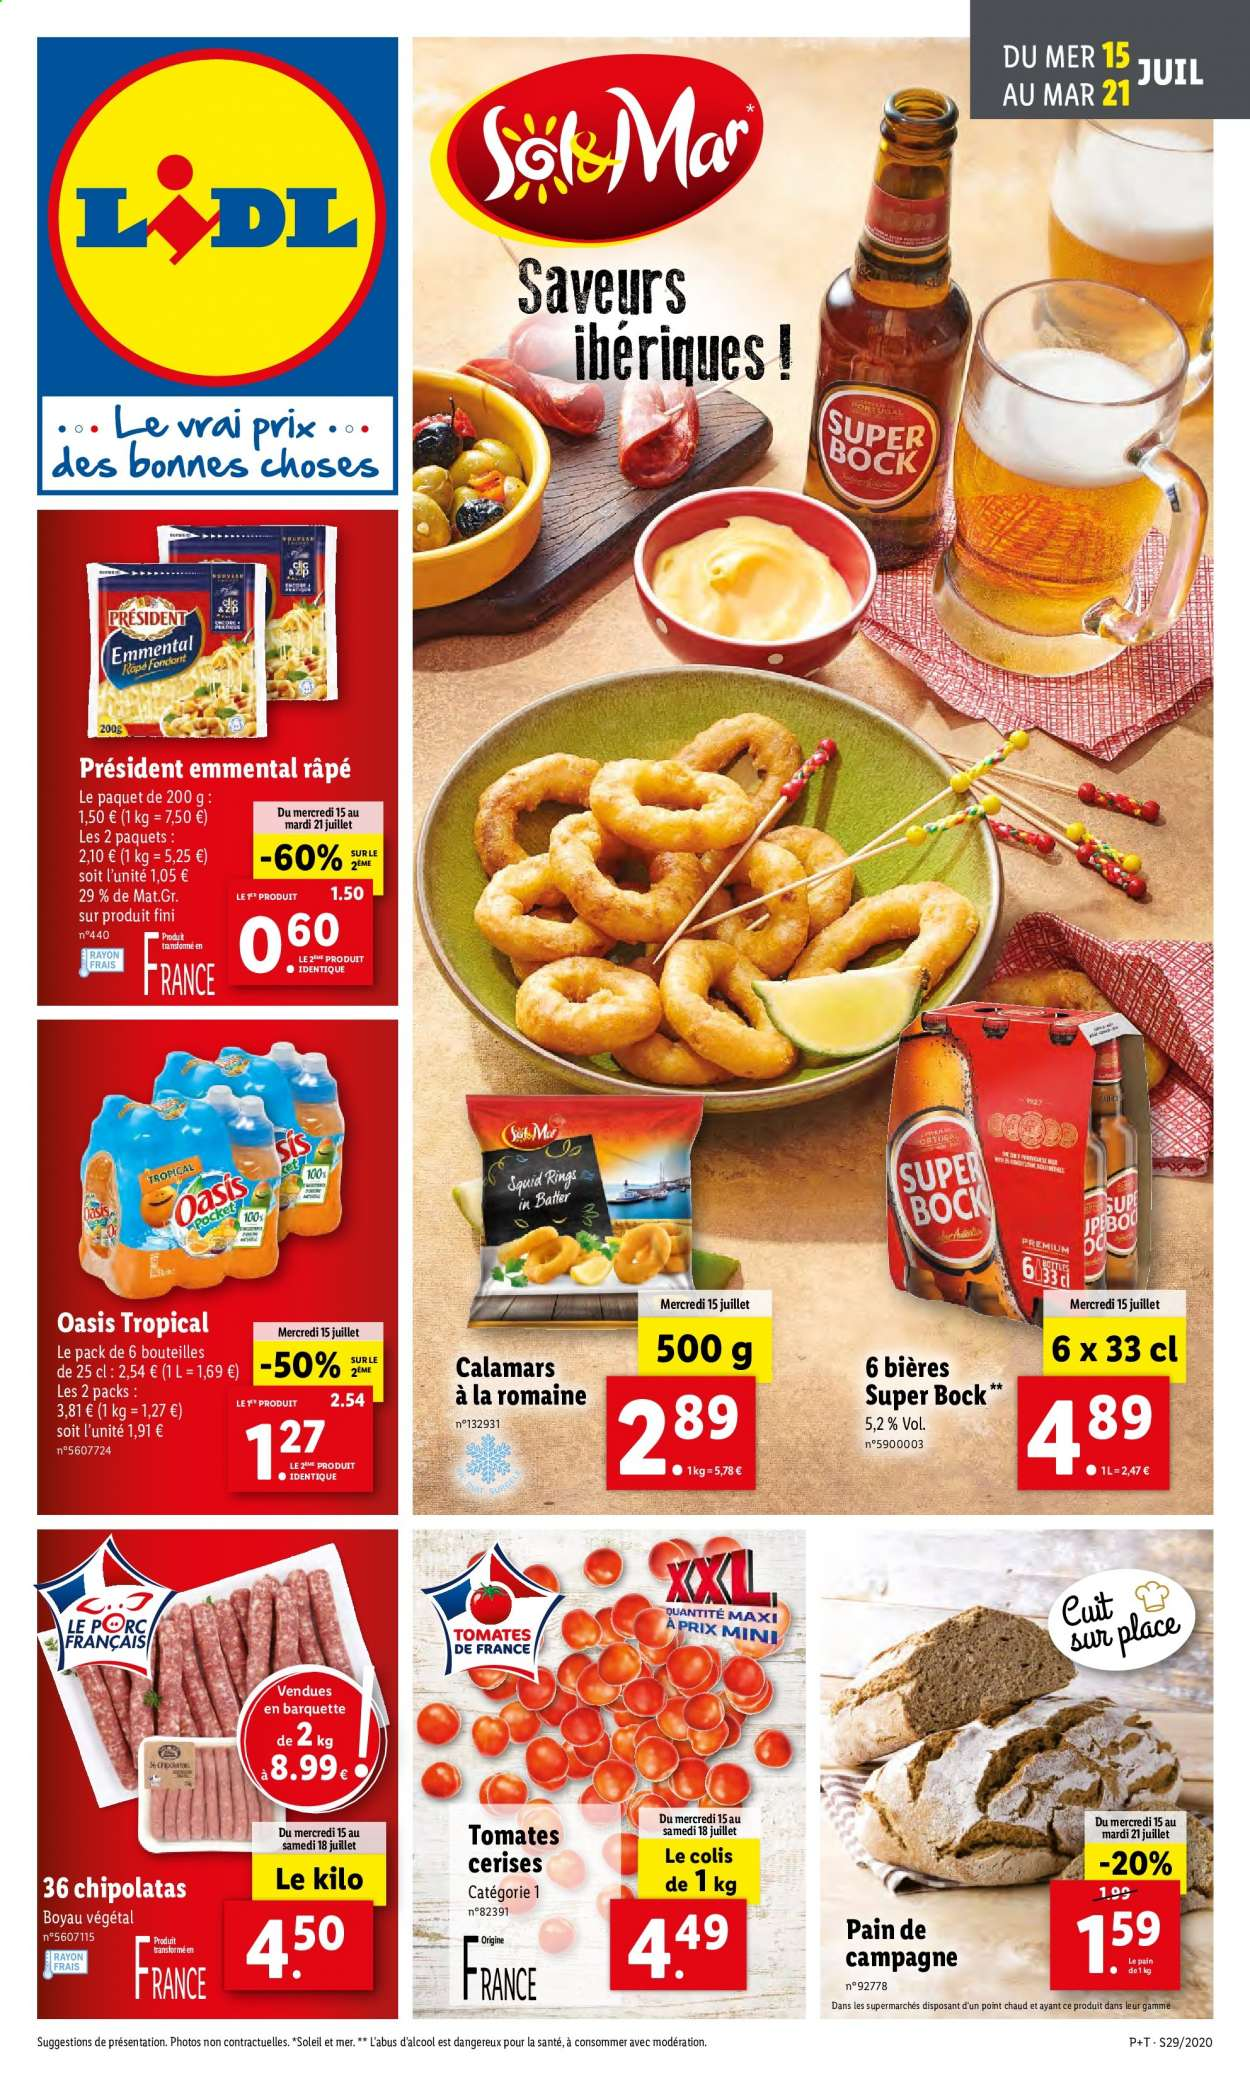 Catalogue Lidl - 15.07.2020 - 21.07.2020. Page 1.